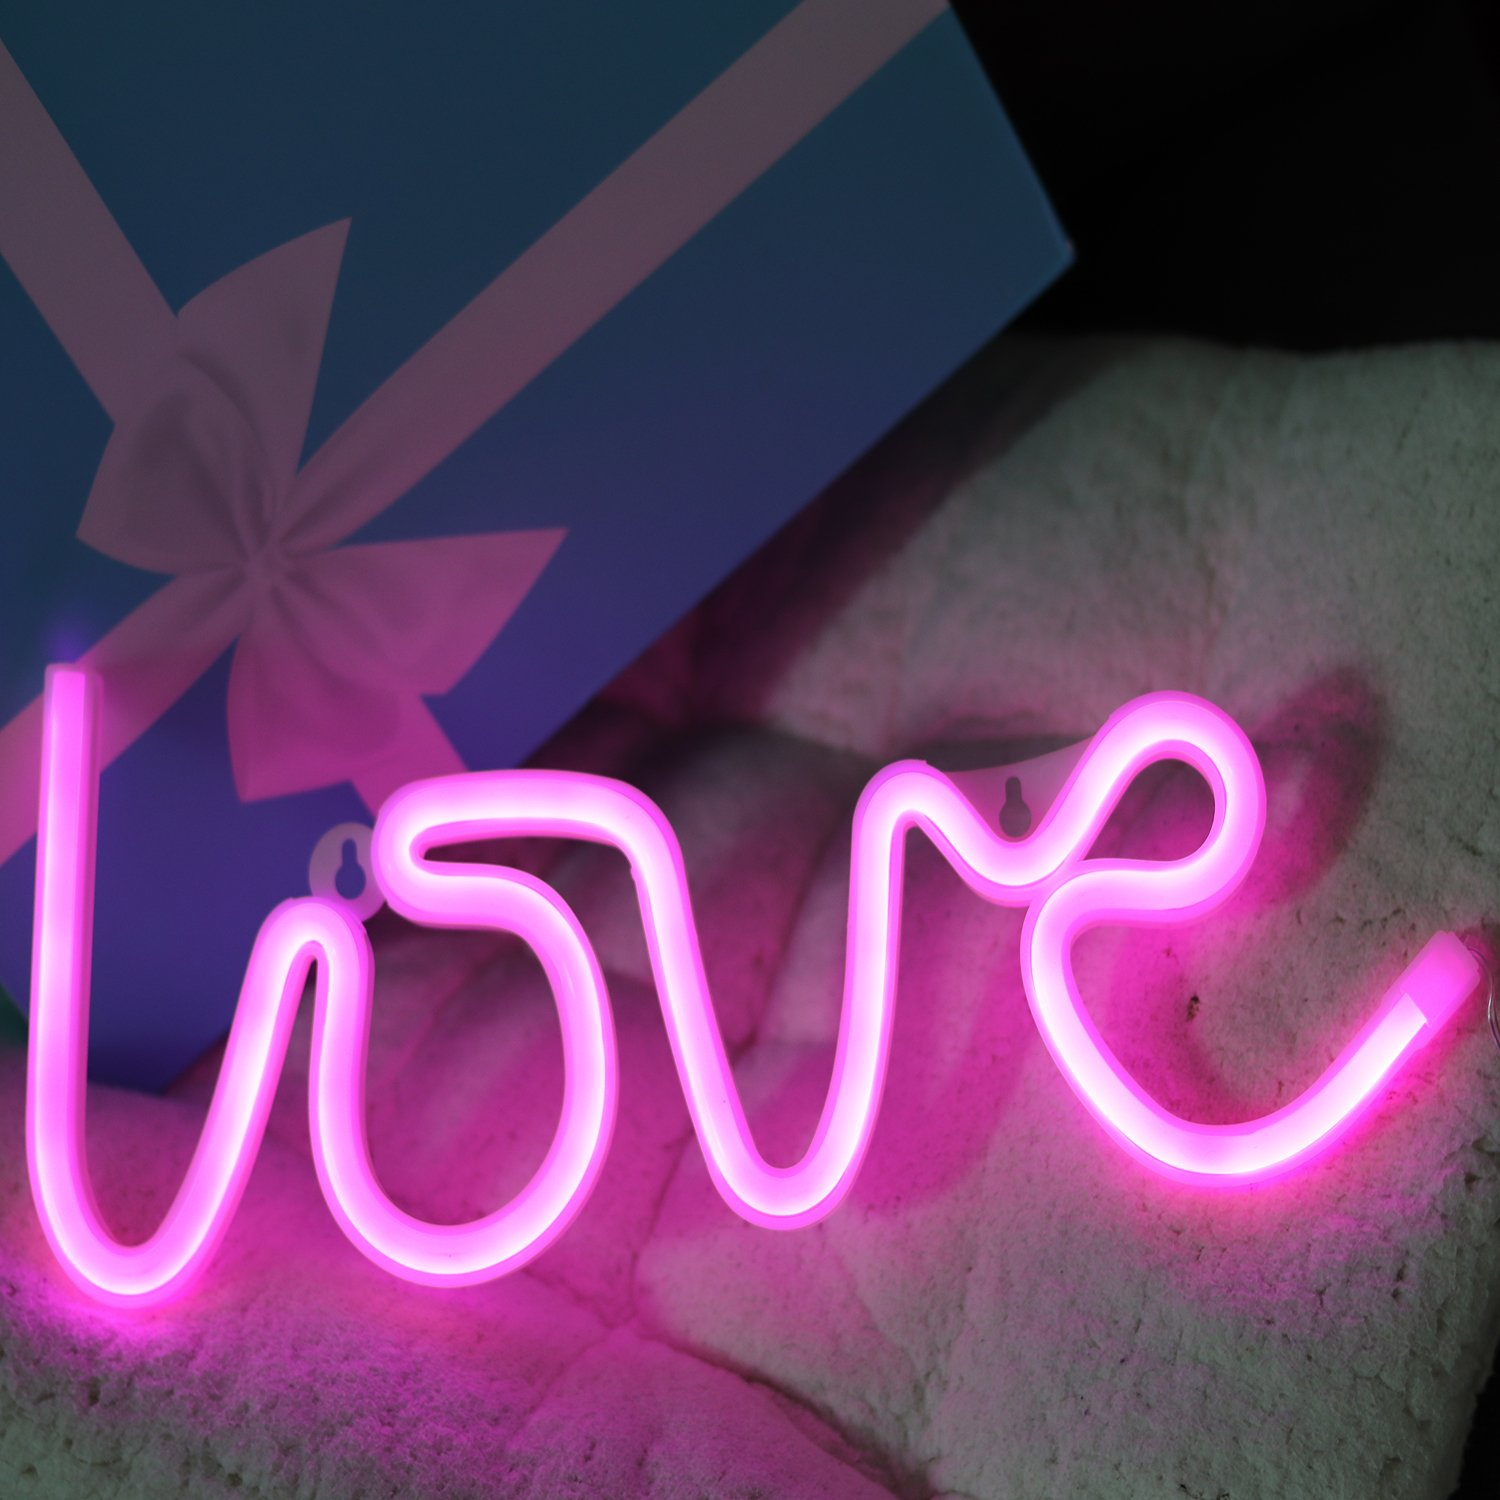 Neon Signs Love Letters Pink LED Decorative Night Light for Bedroom Wall décor Light for Wedding Valentine's day Pub Battery Operated and USB Powered Neon Light(NELOV) by VagaryLight (Image #1)